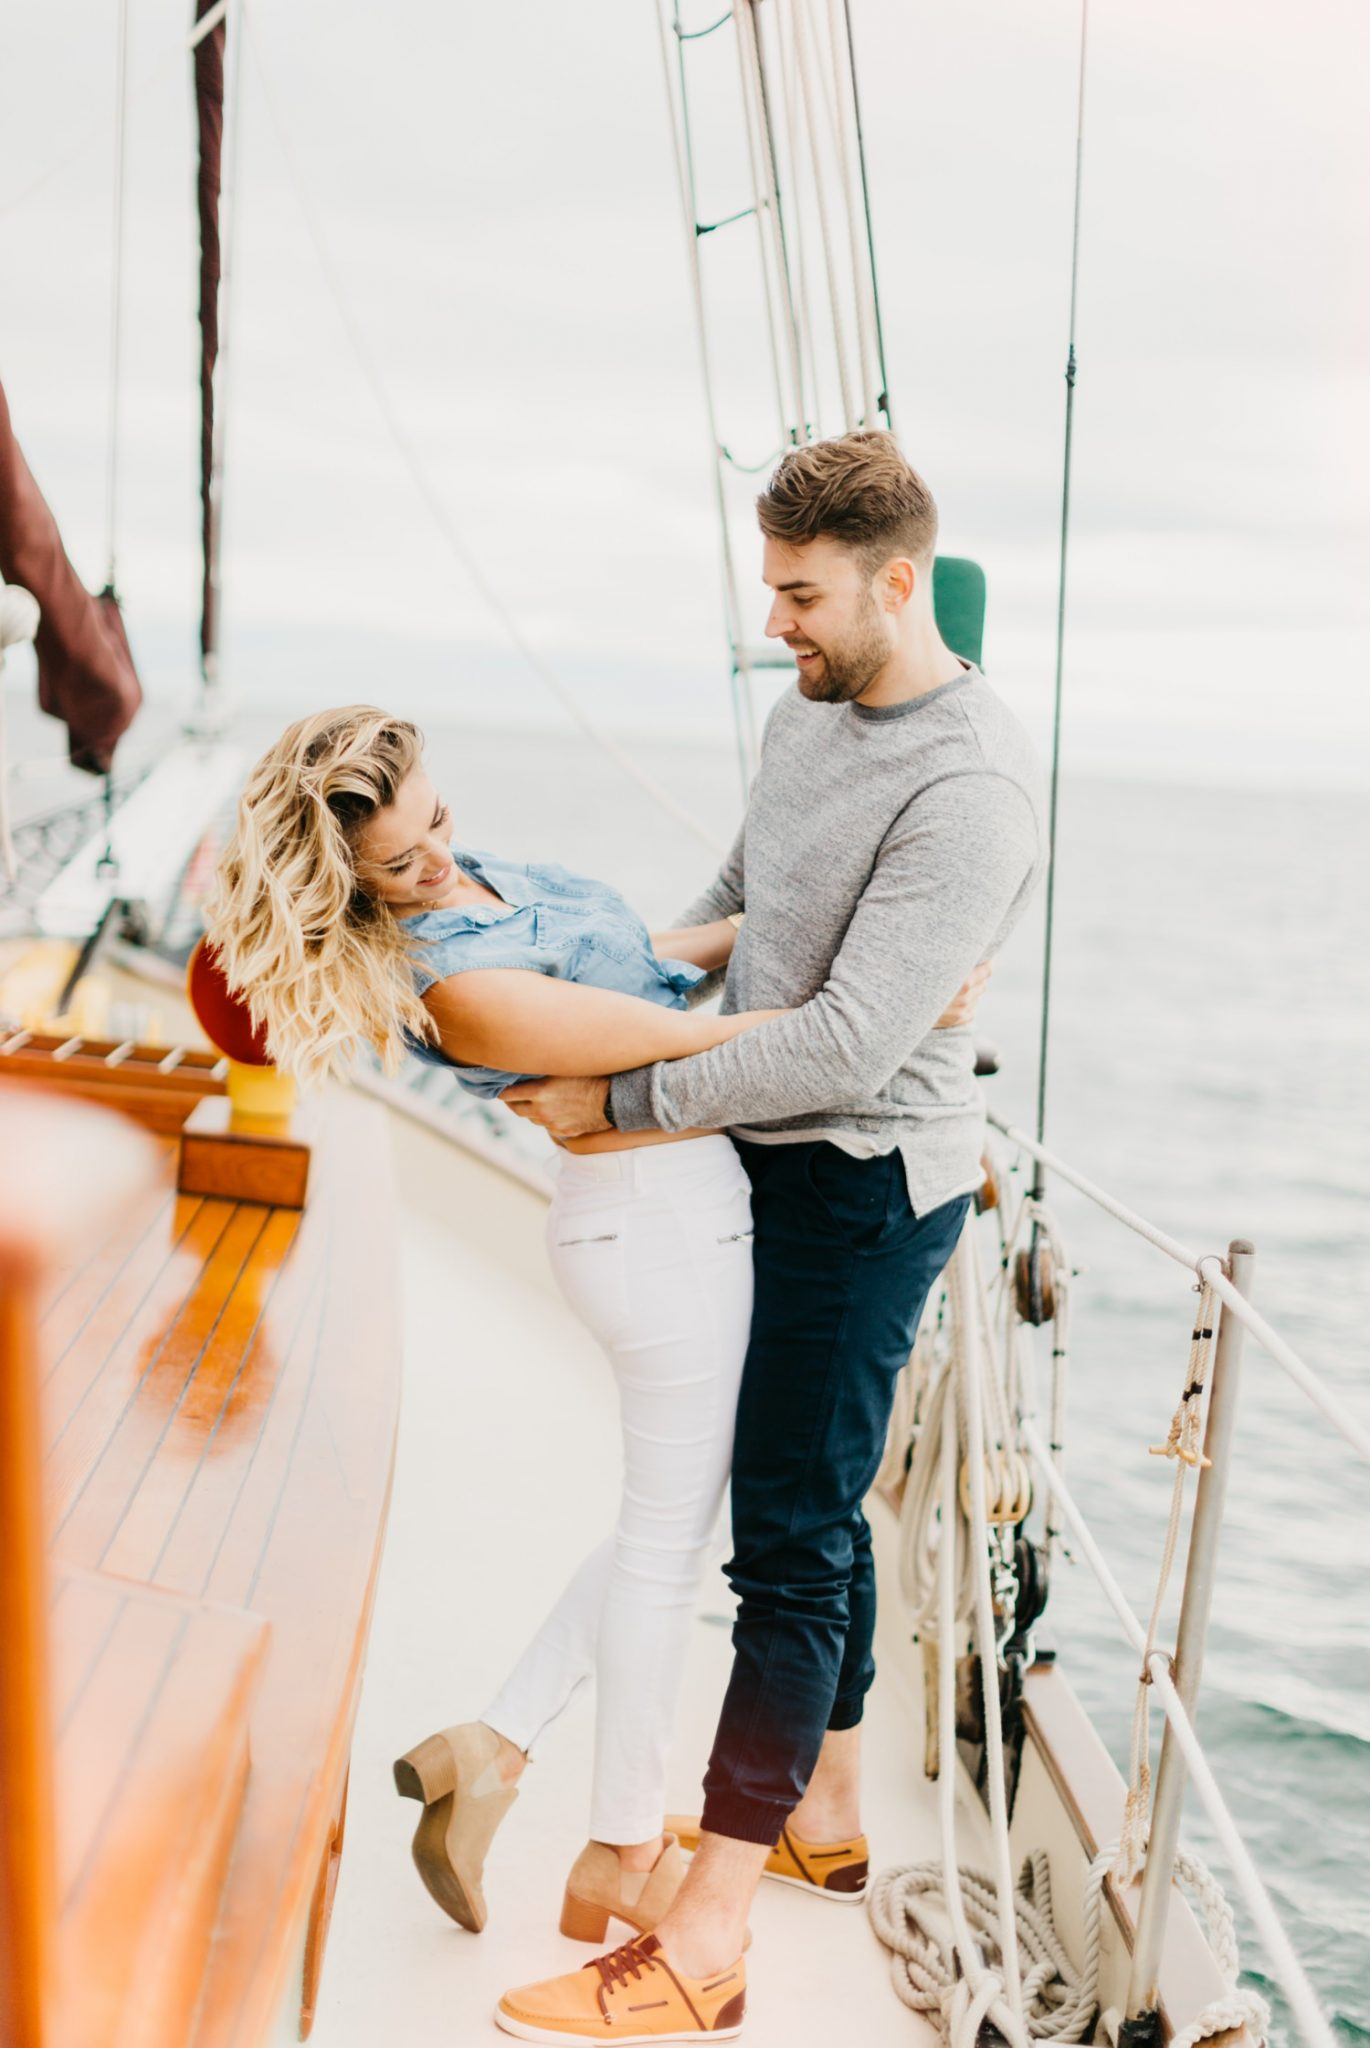 Natasha + Mitch // Water Adventure Session, Luke Liable  // Victoria & Vancouver Island Wedding Photographer